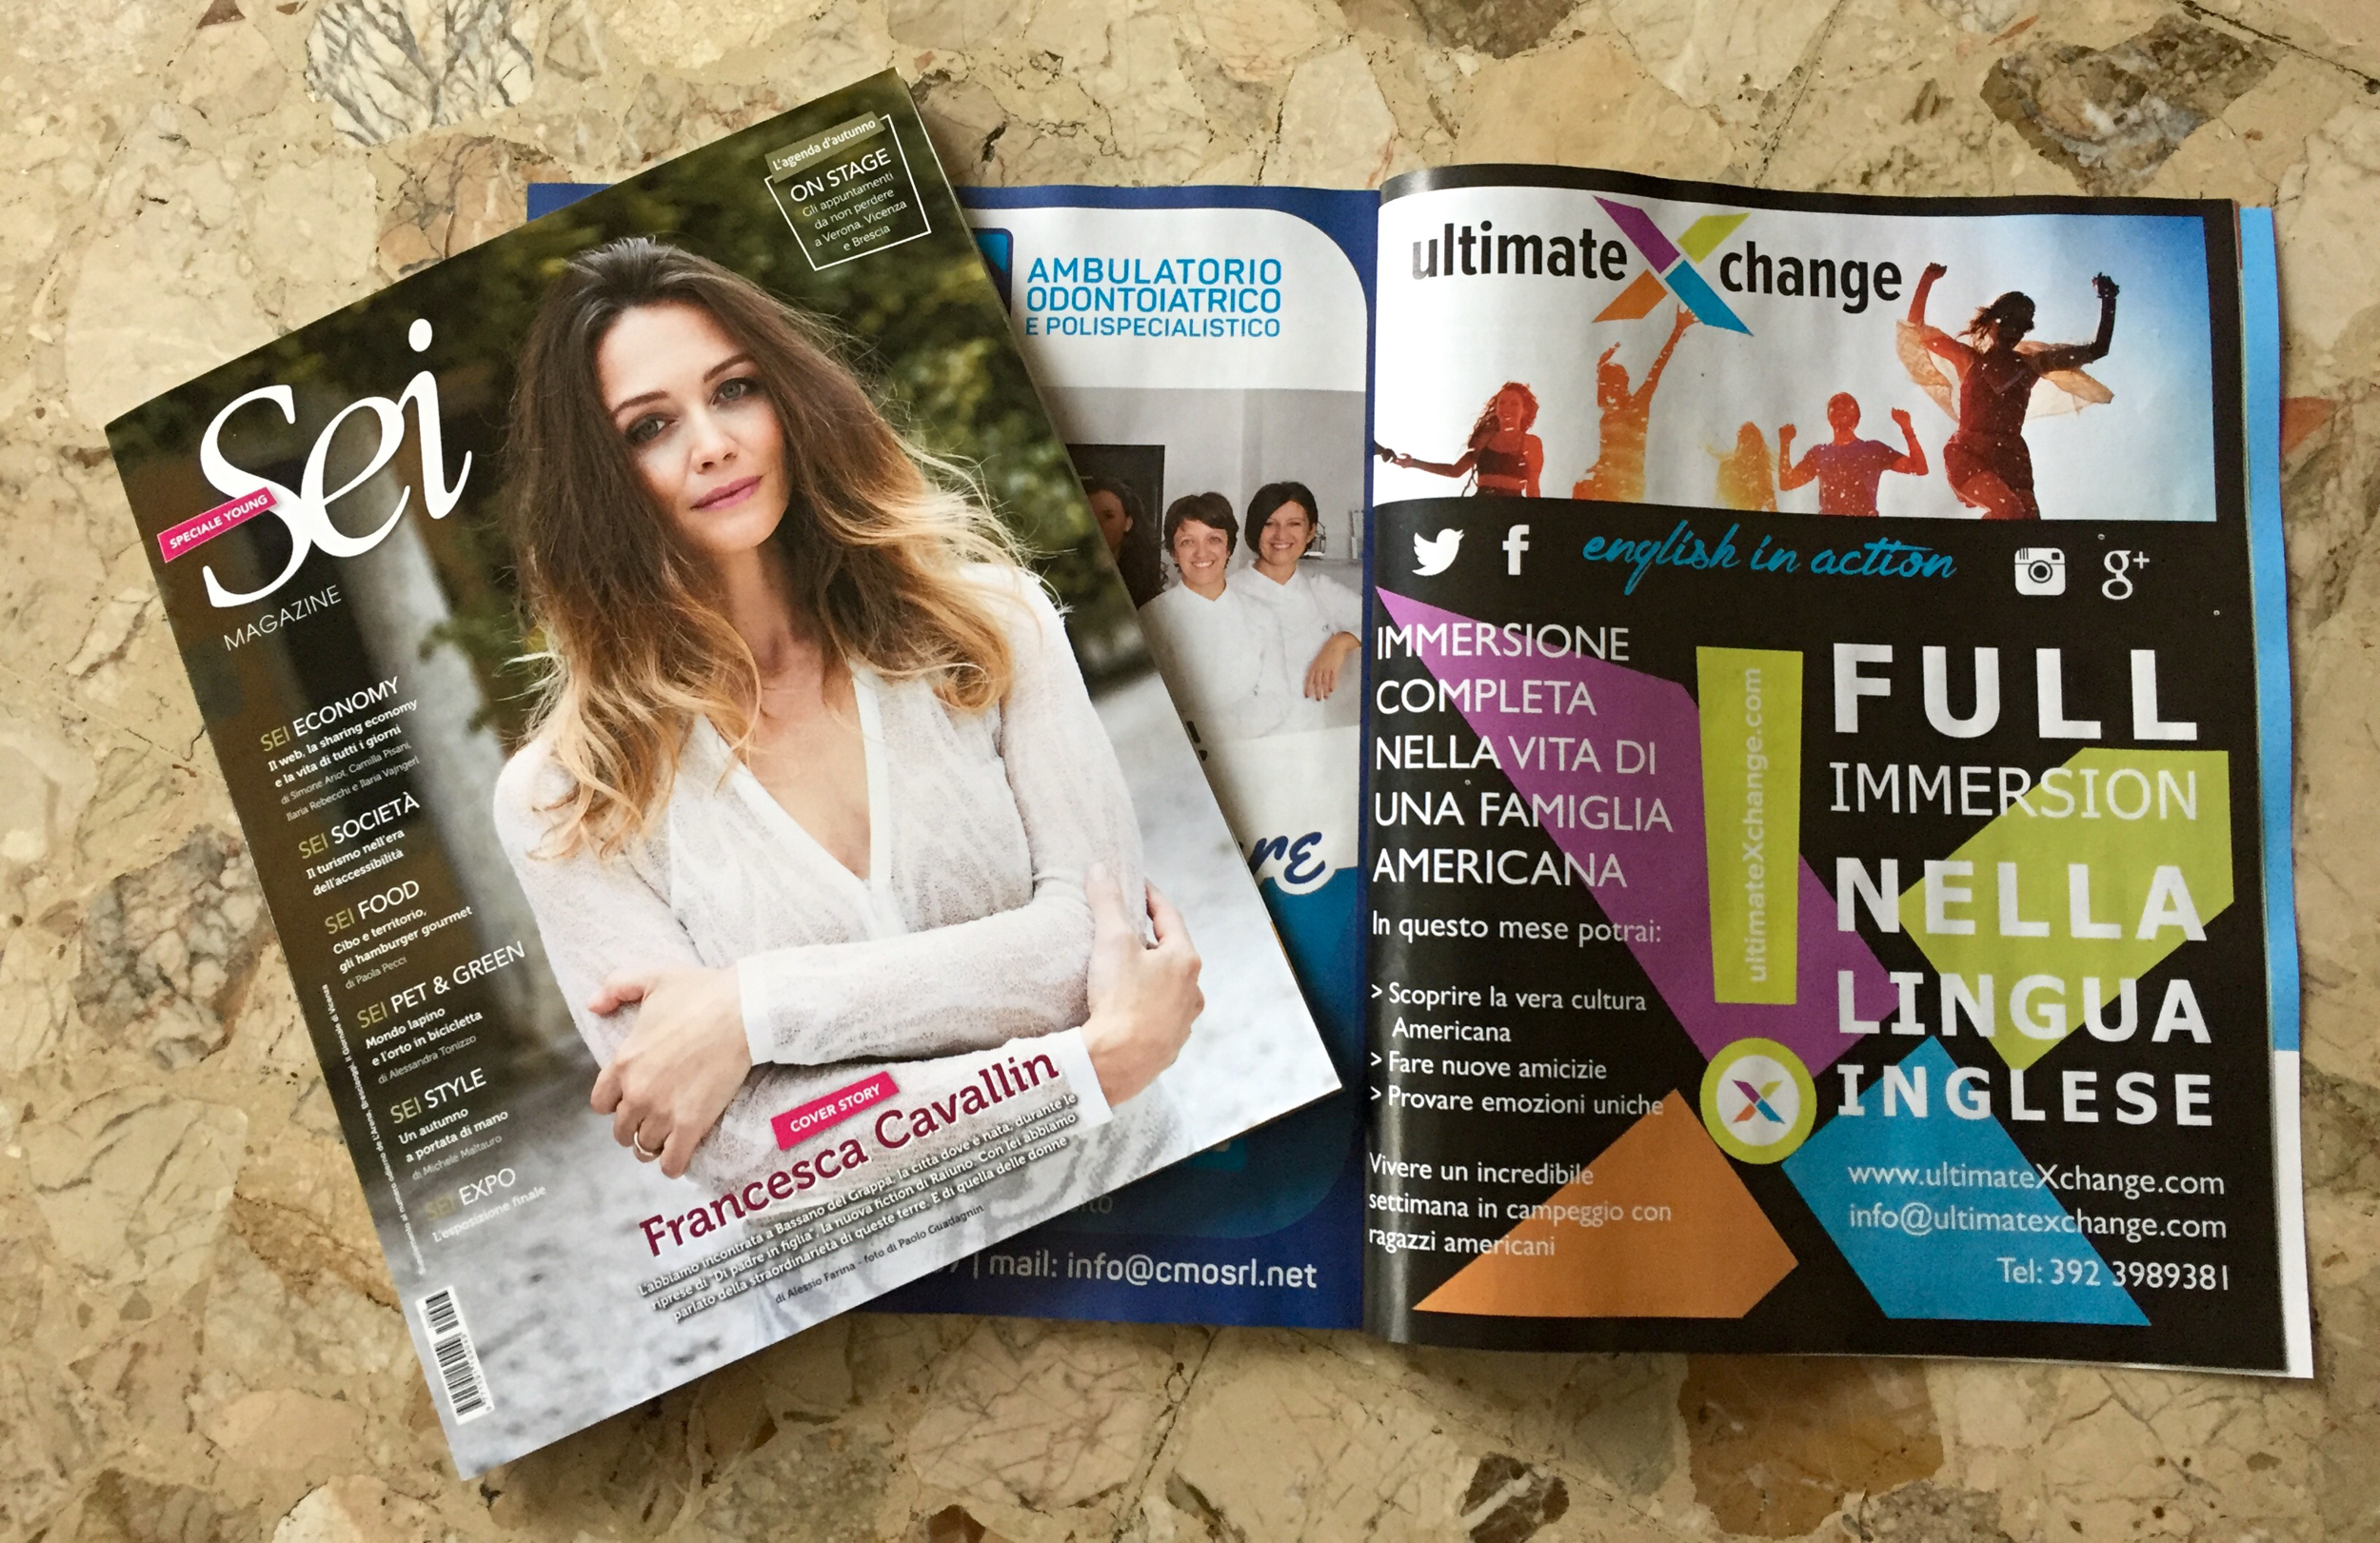 ultimateXchange was featured in issue number 19 of the October 2015 edition of SEI Magazine. Distributed 100,000 copies in the cities of Verona, Vicenza, and Brescia.